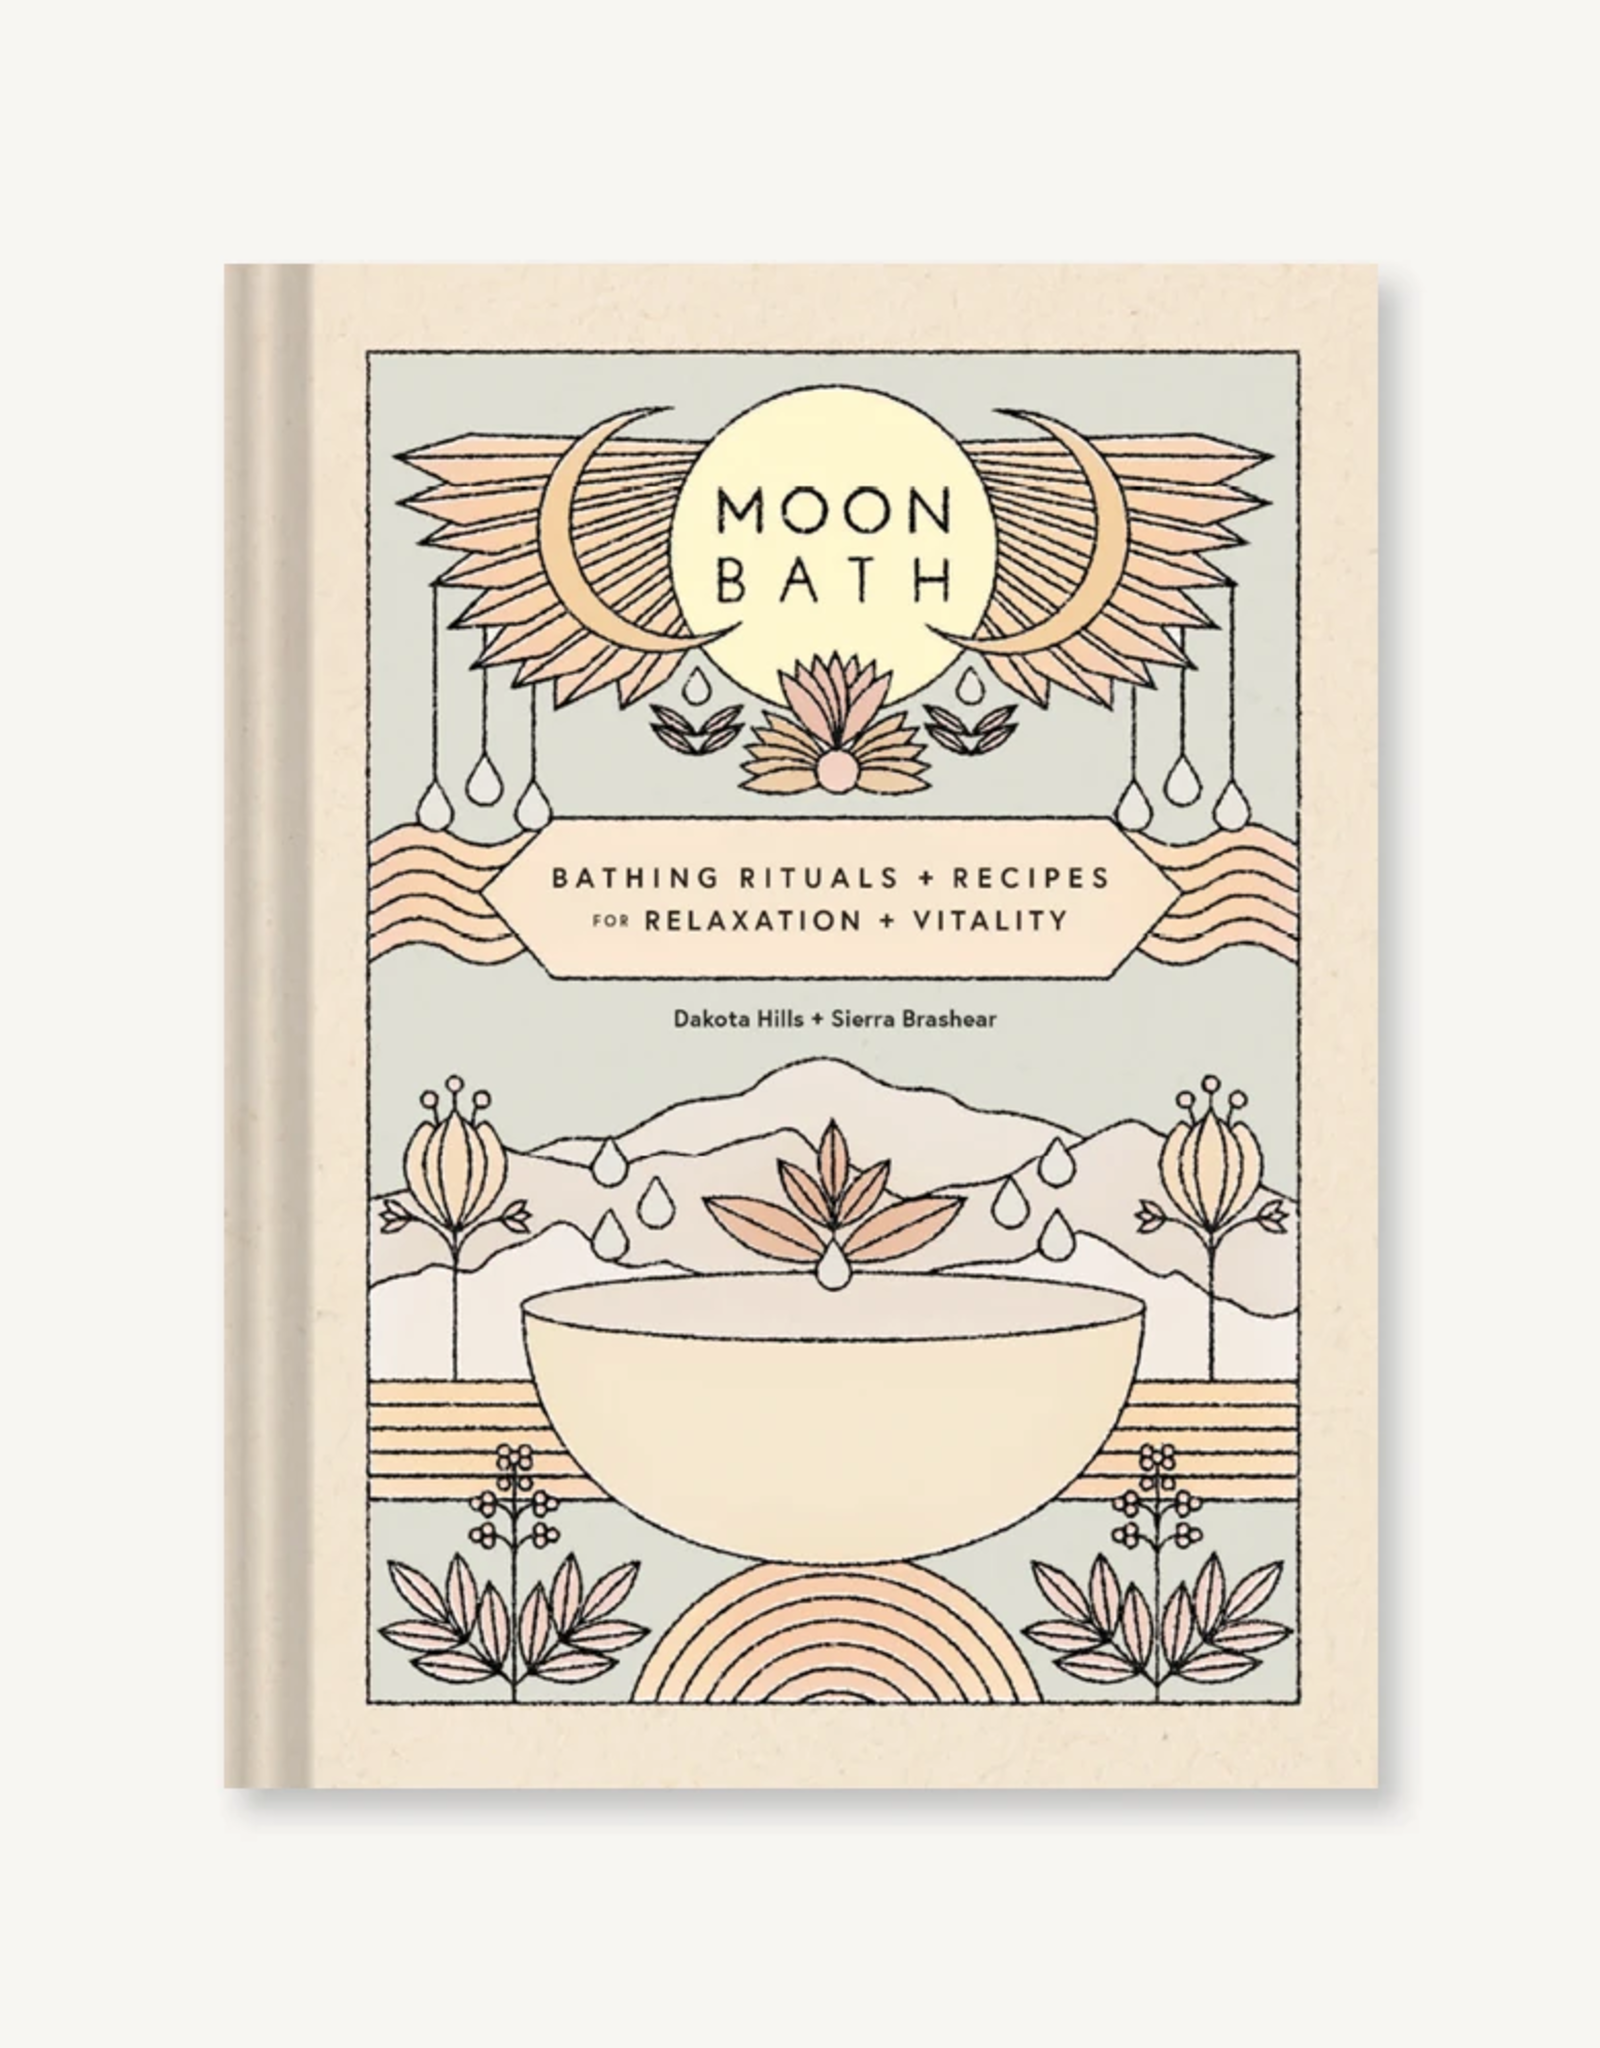 Hachette Book Group Moon Bath: Bathing Rituals and Recipes for Relaxation and Vitality